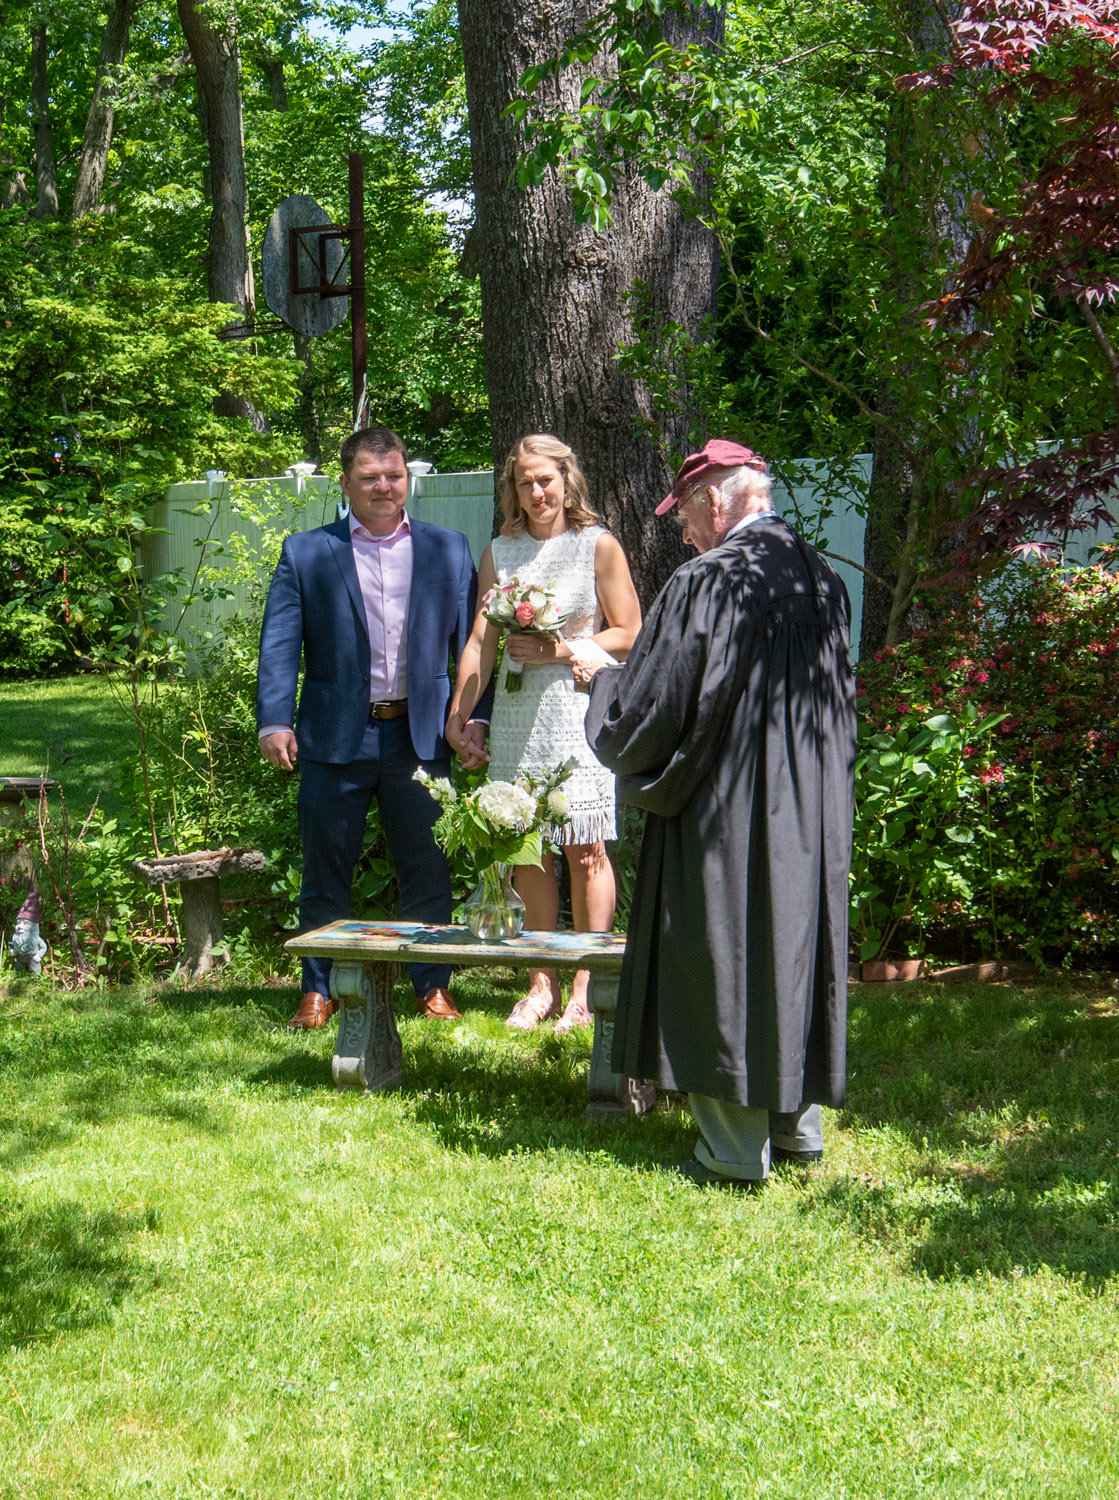 The couple were married by the groom's 92-year-old grandfather, Judge Leo McGinity.